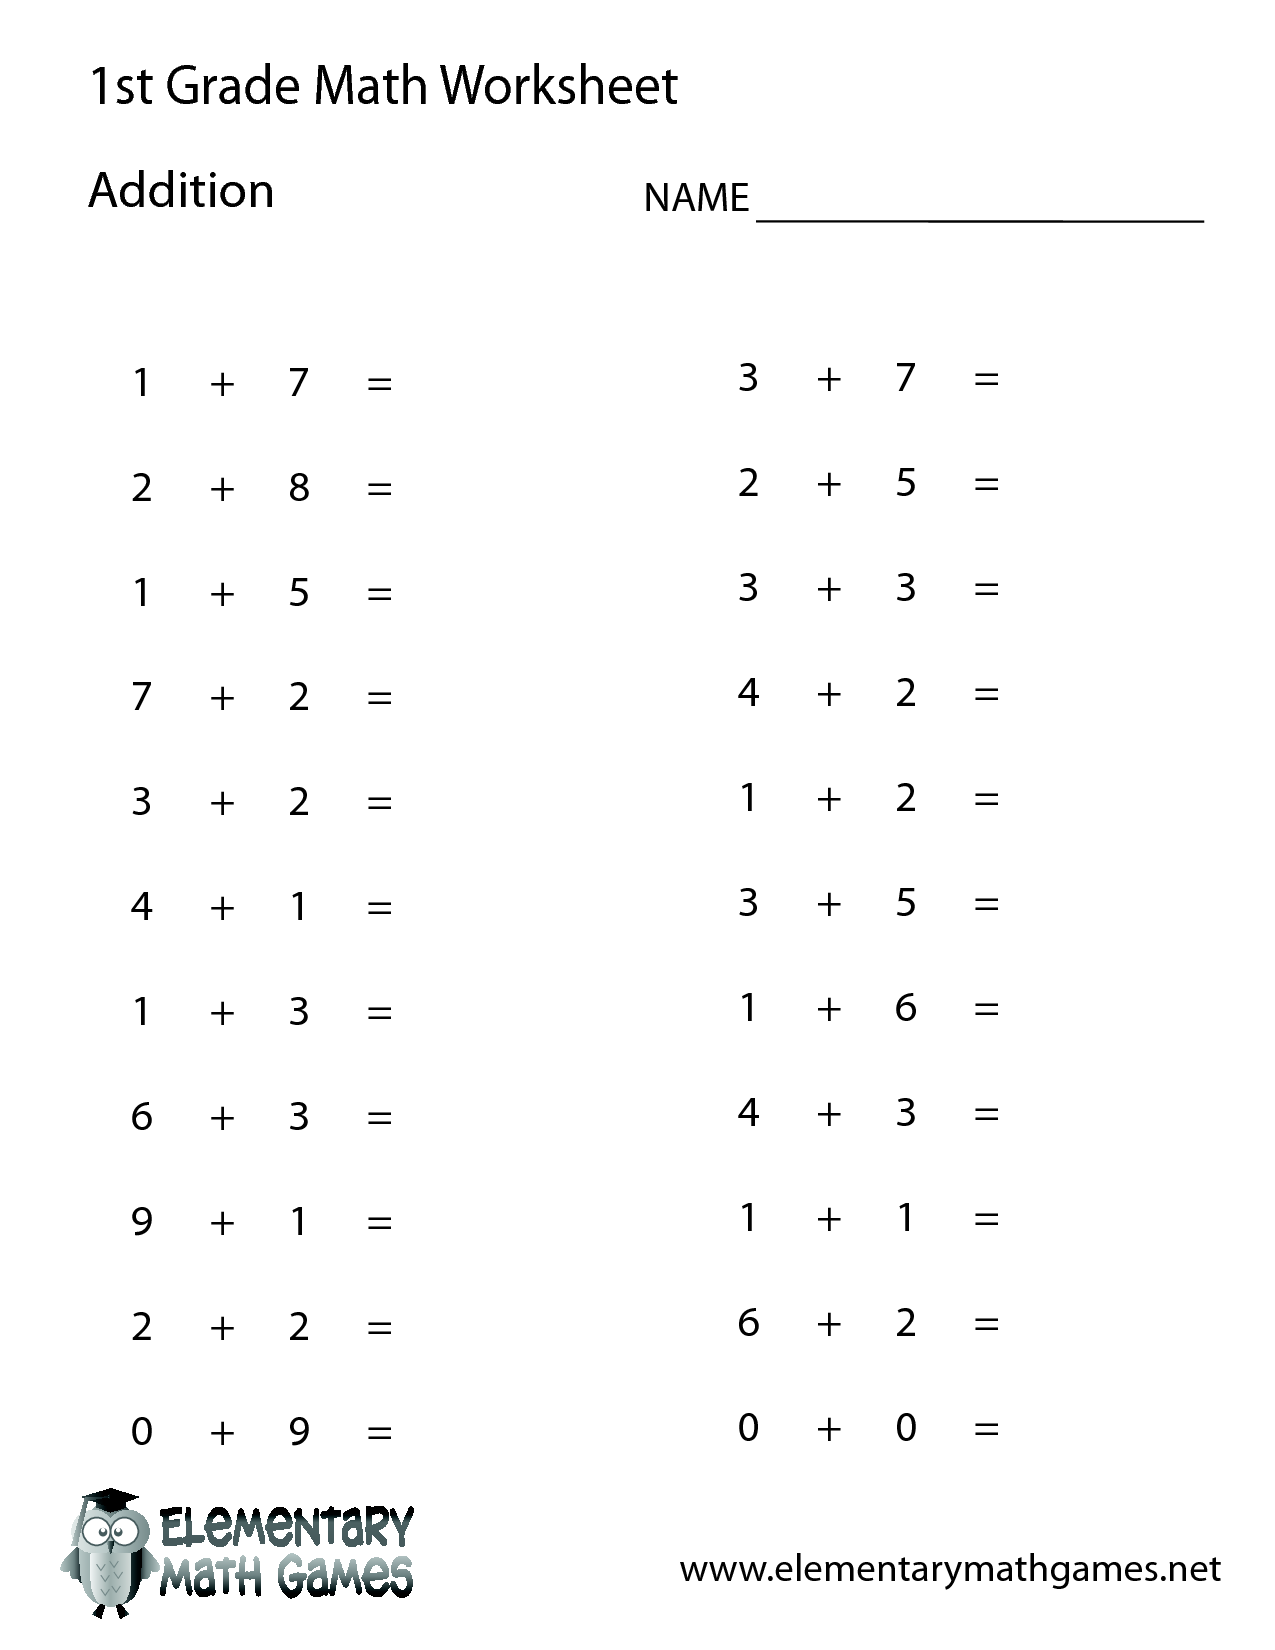 Printables Math Addition Worksheets math addition worksheets for grade 1 scalien scalien